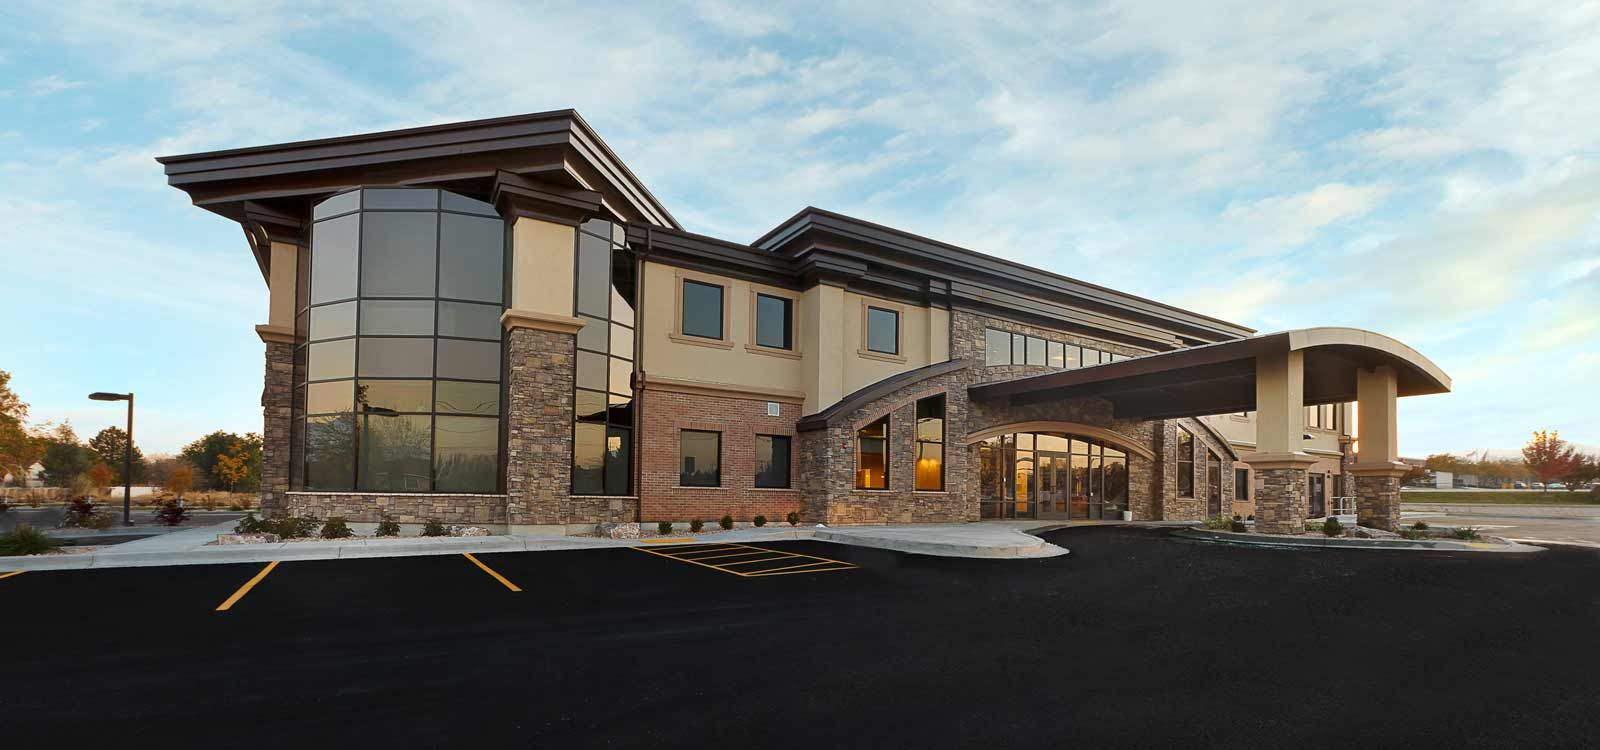 Granger Medical – West Jordan, UT